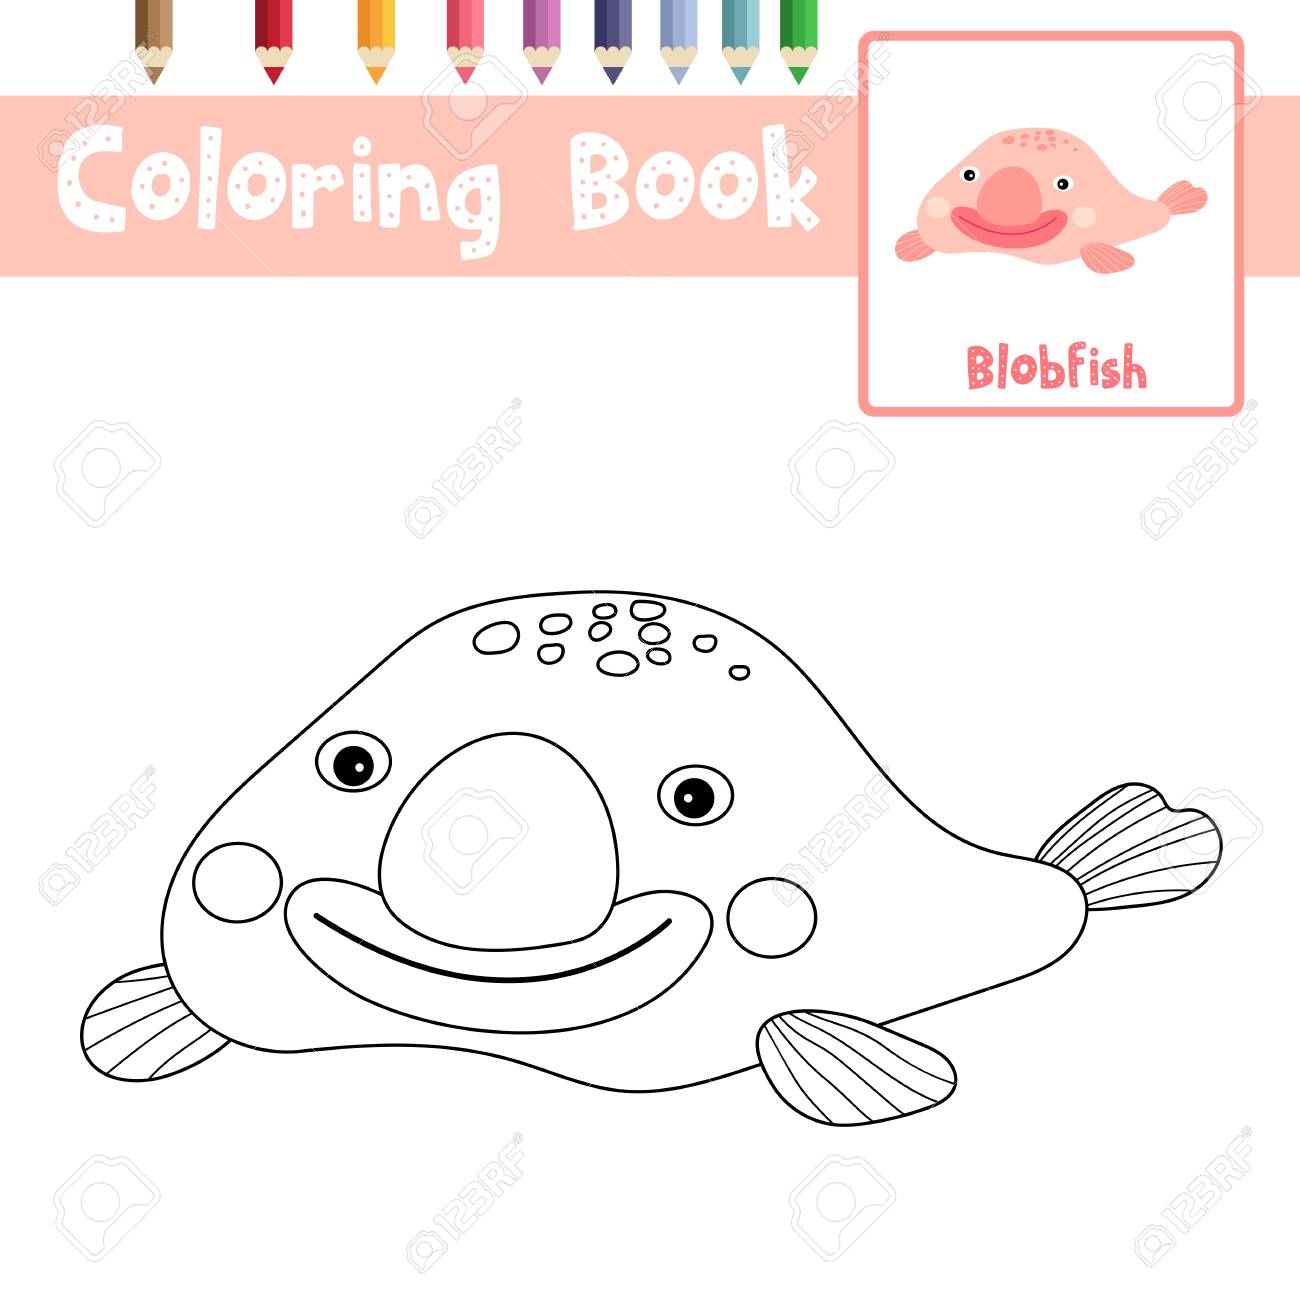 Coloring Page Of Happy Pink Blobfish Animals For Preschool Kids